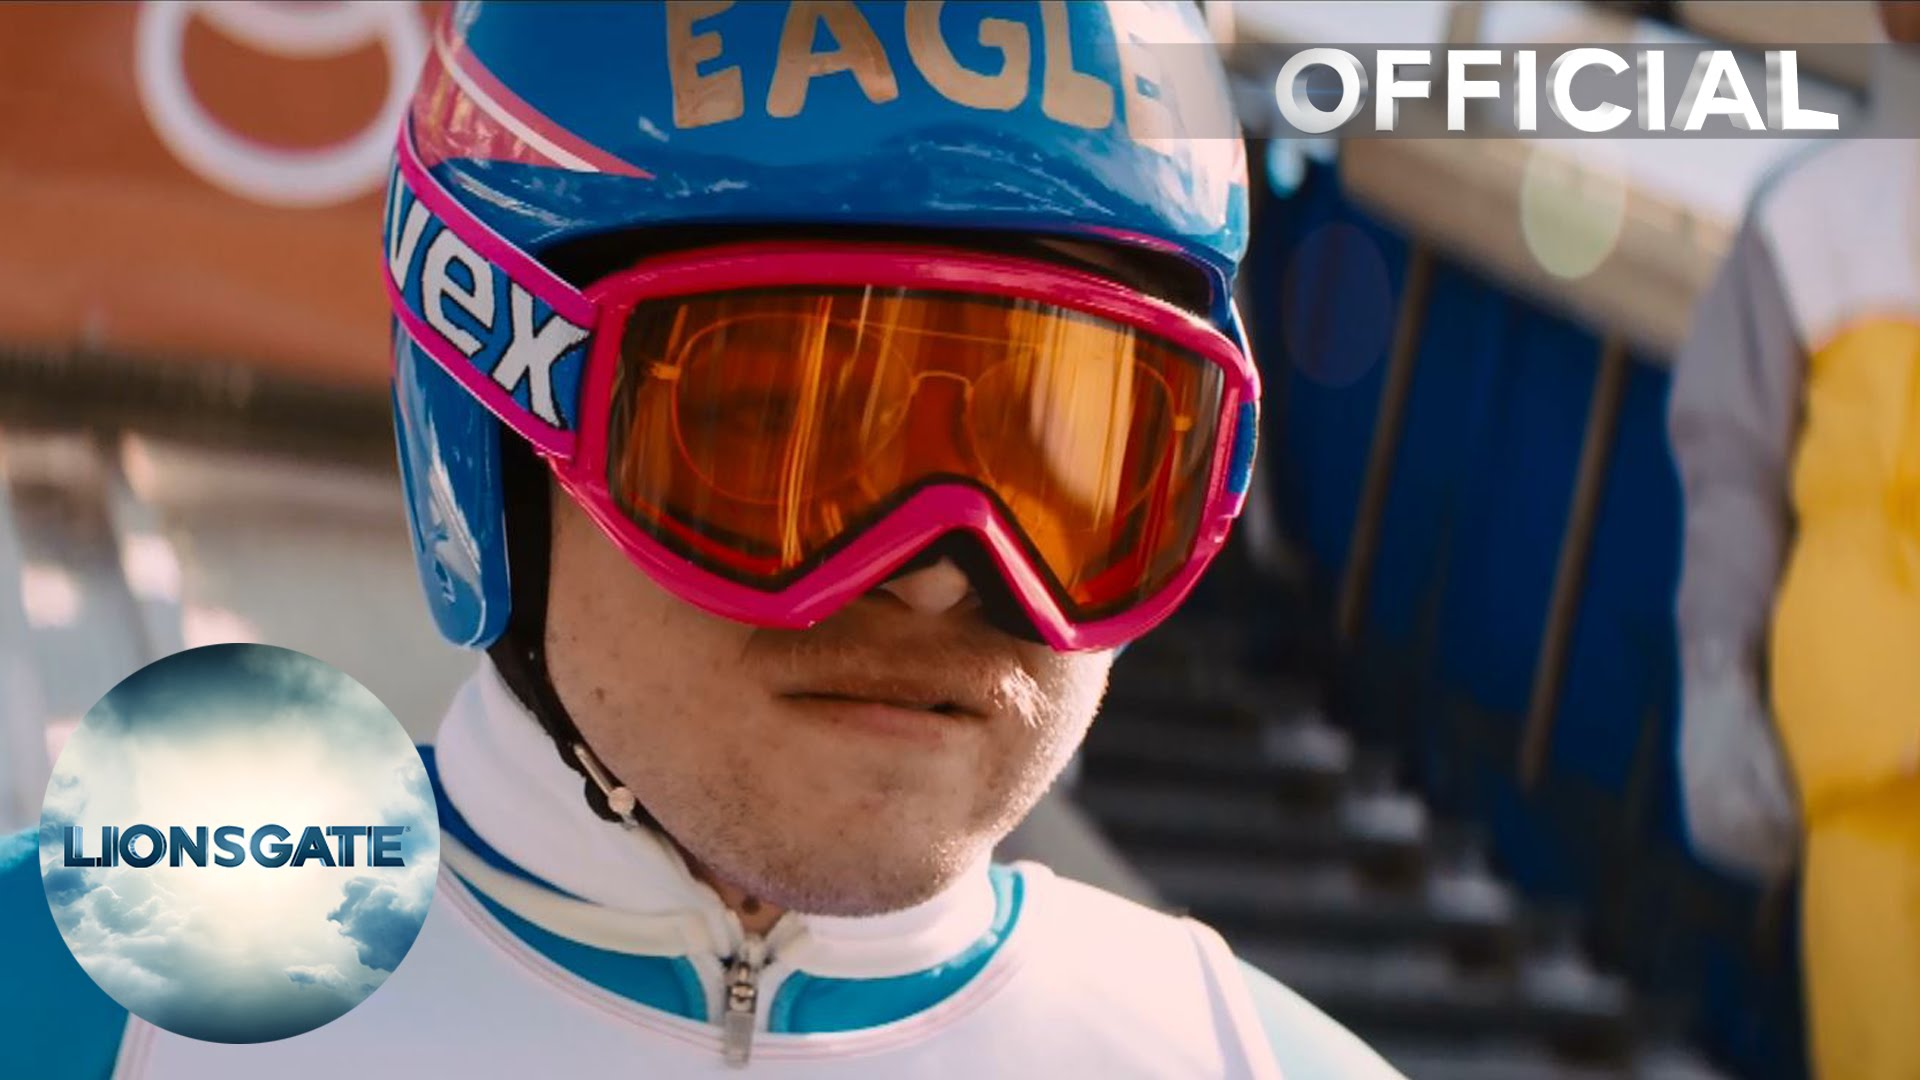 Eddie the Eagle – in cinemas from March 28